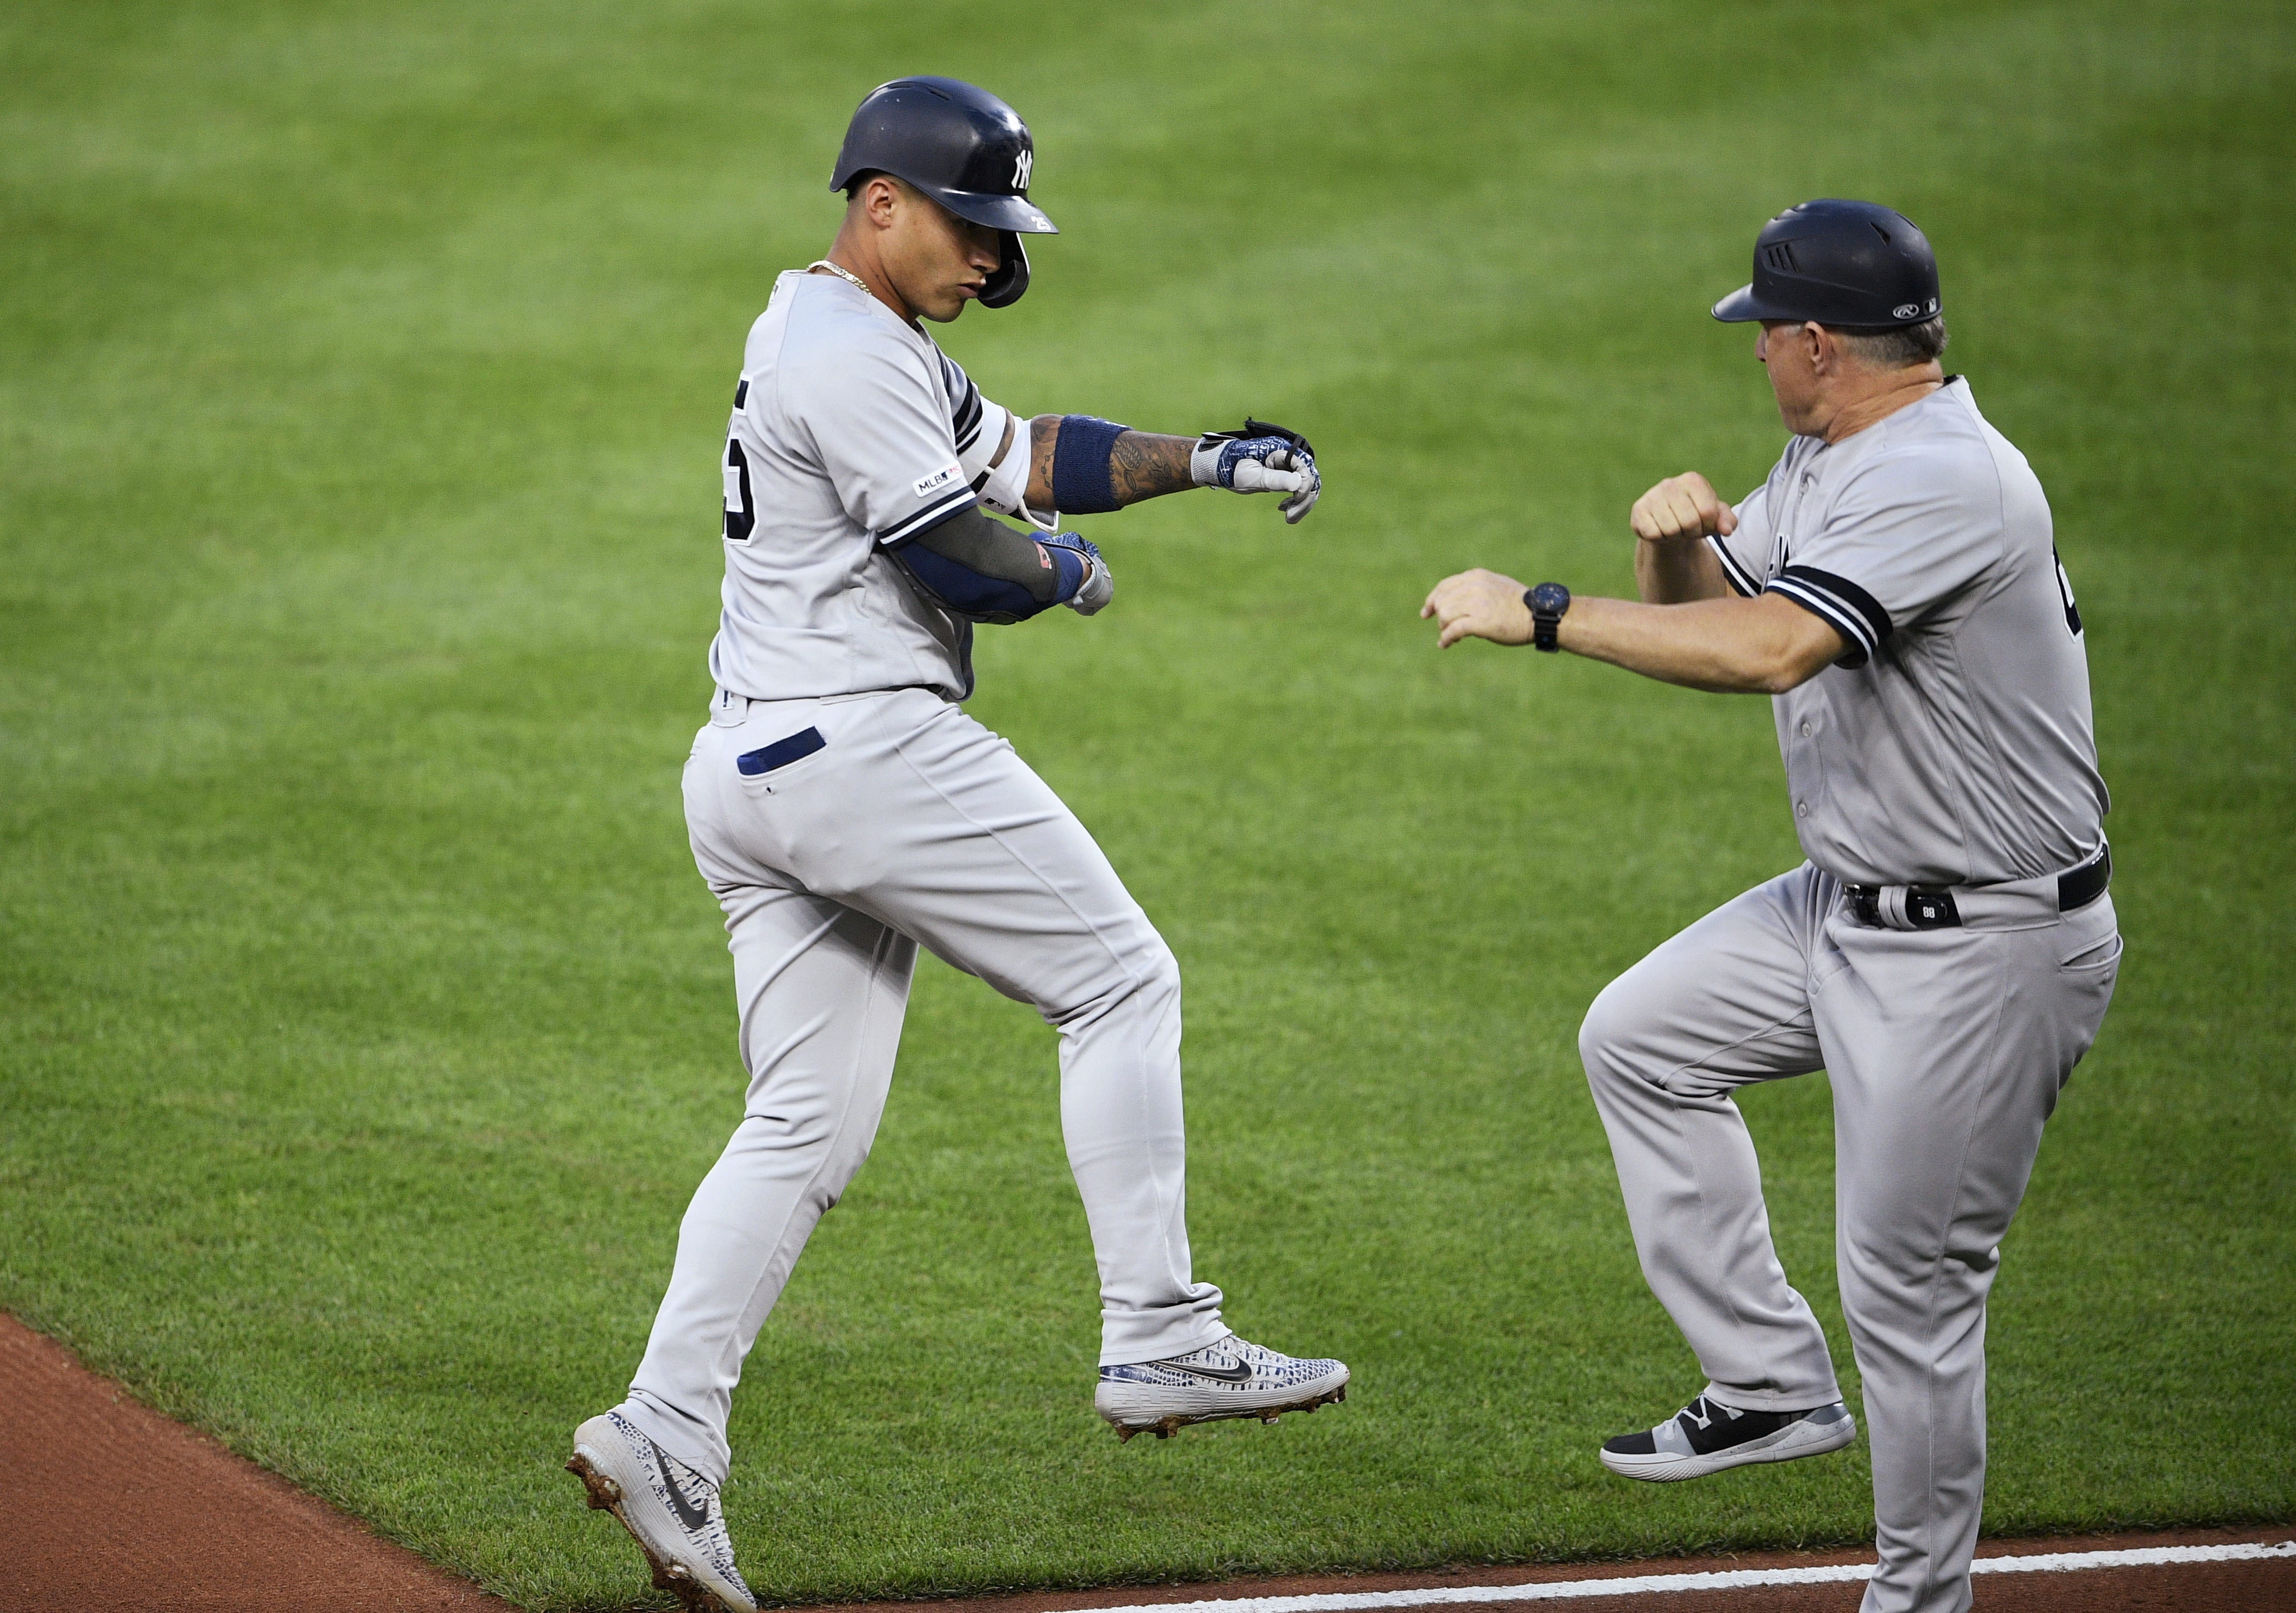 Torres hits 2 of Yankees' 5 HRs in 7-5 win over Orioles